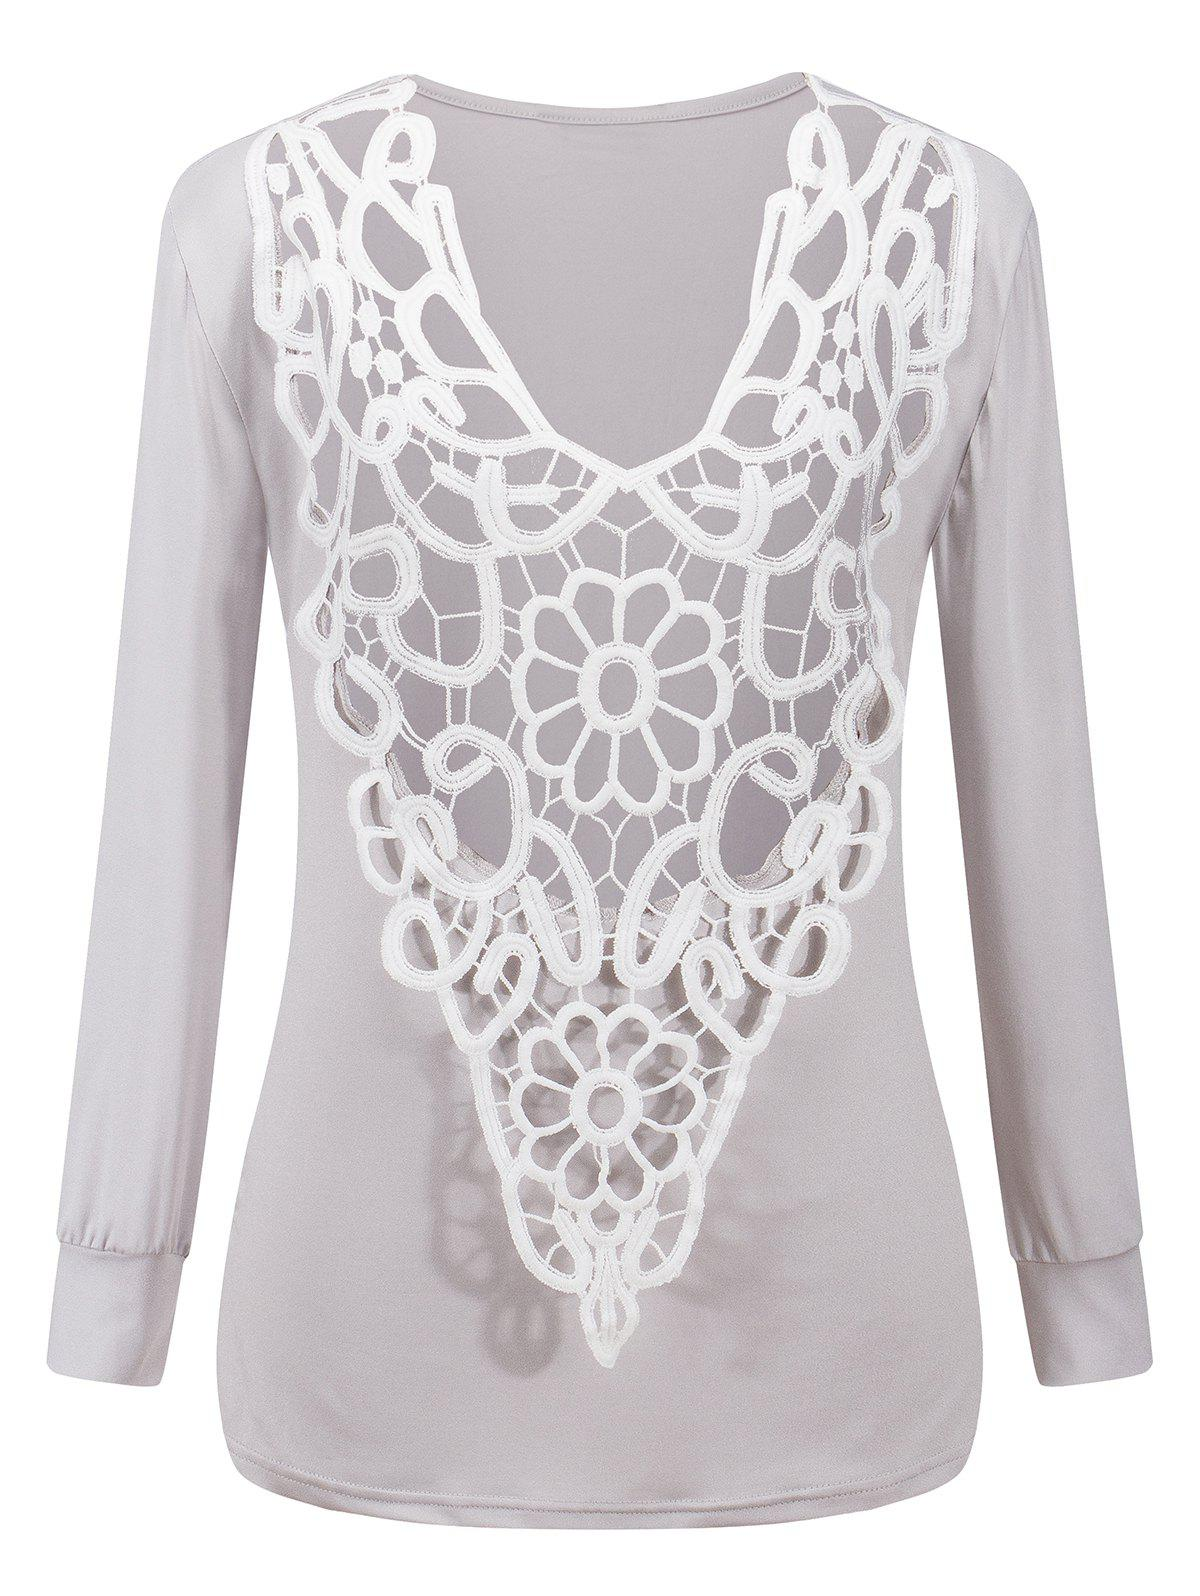 Online Two-Sides Wear See Through Crochet Top